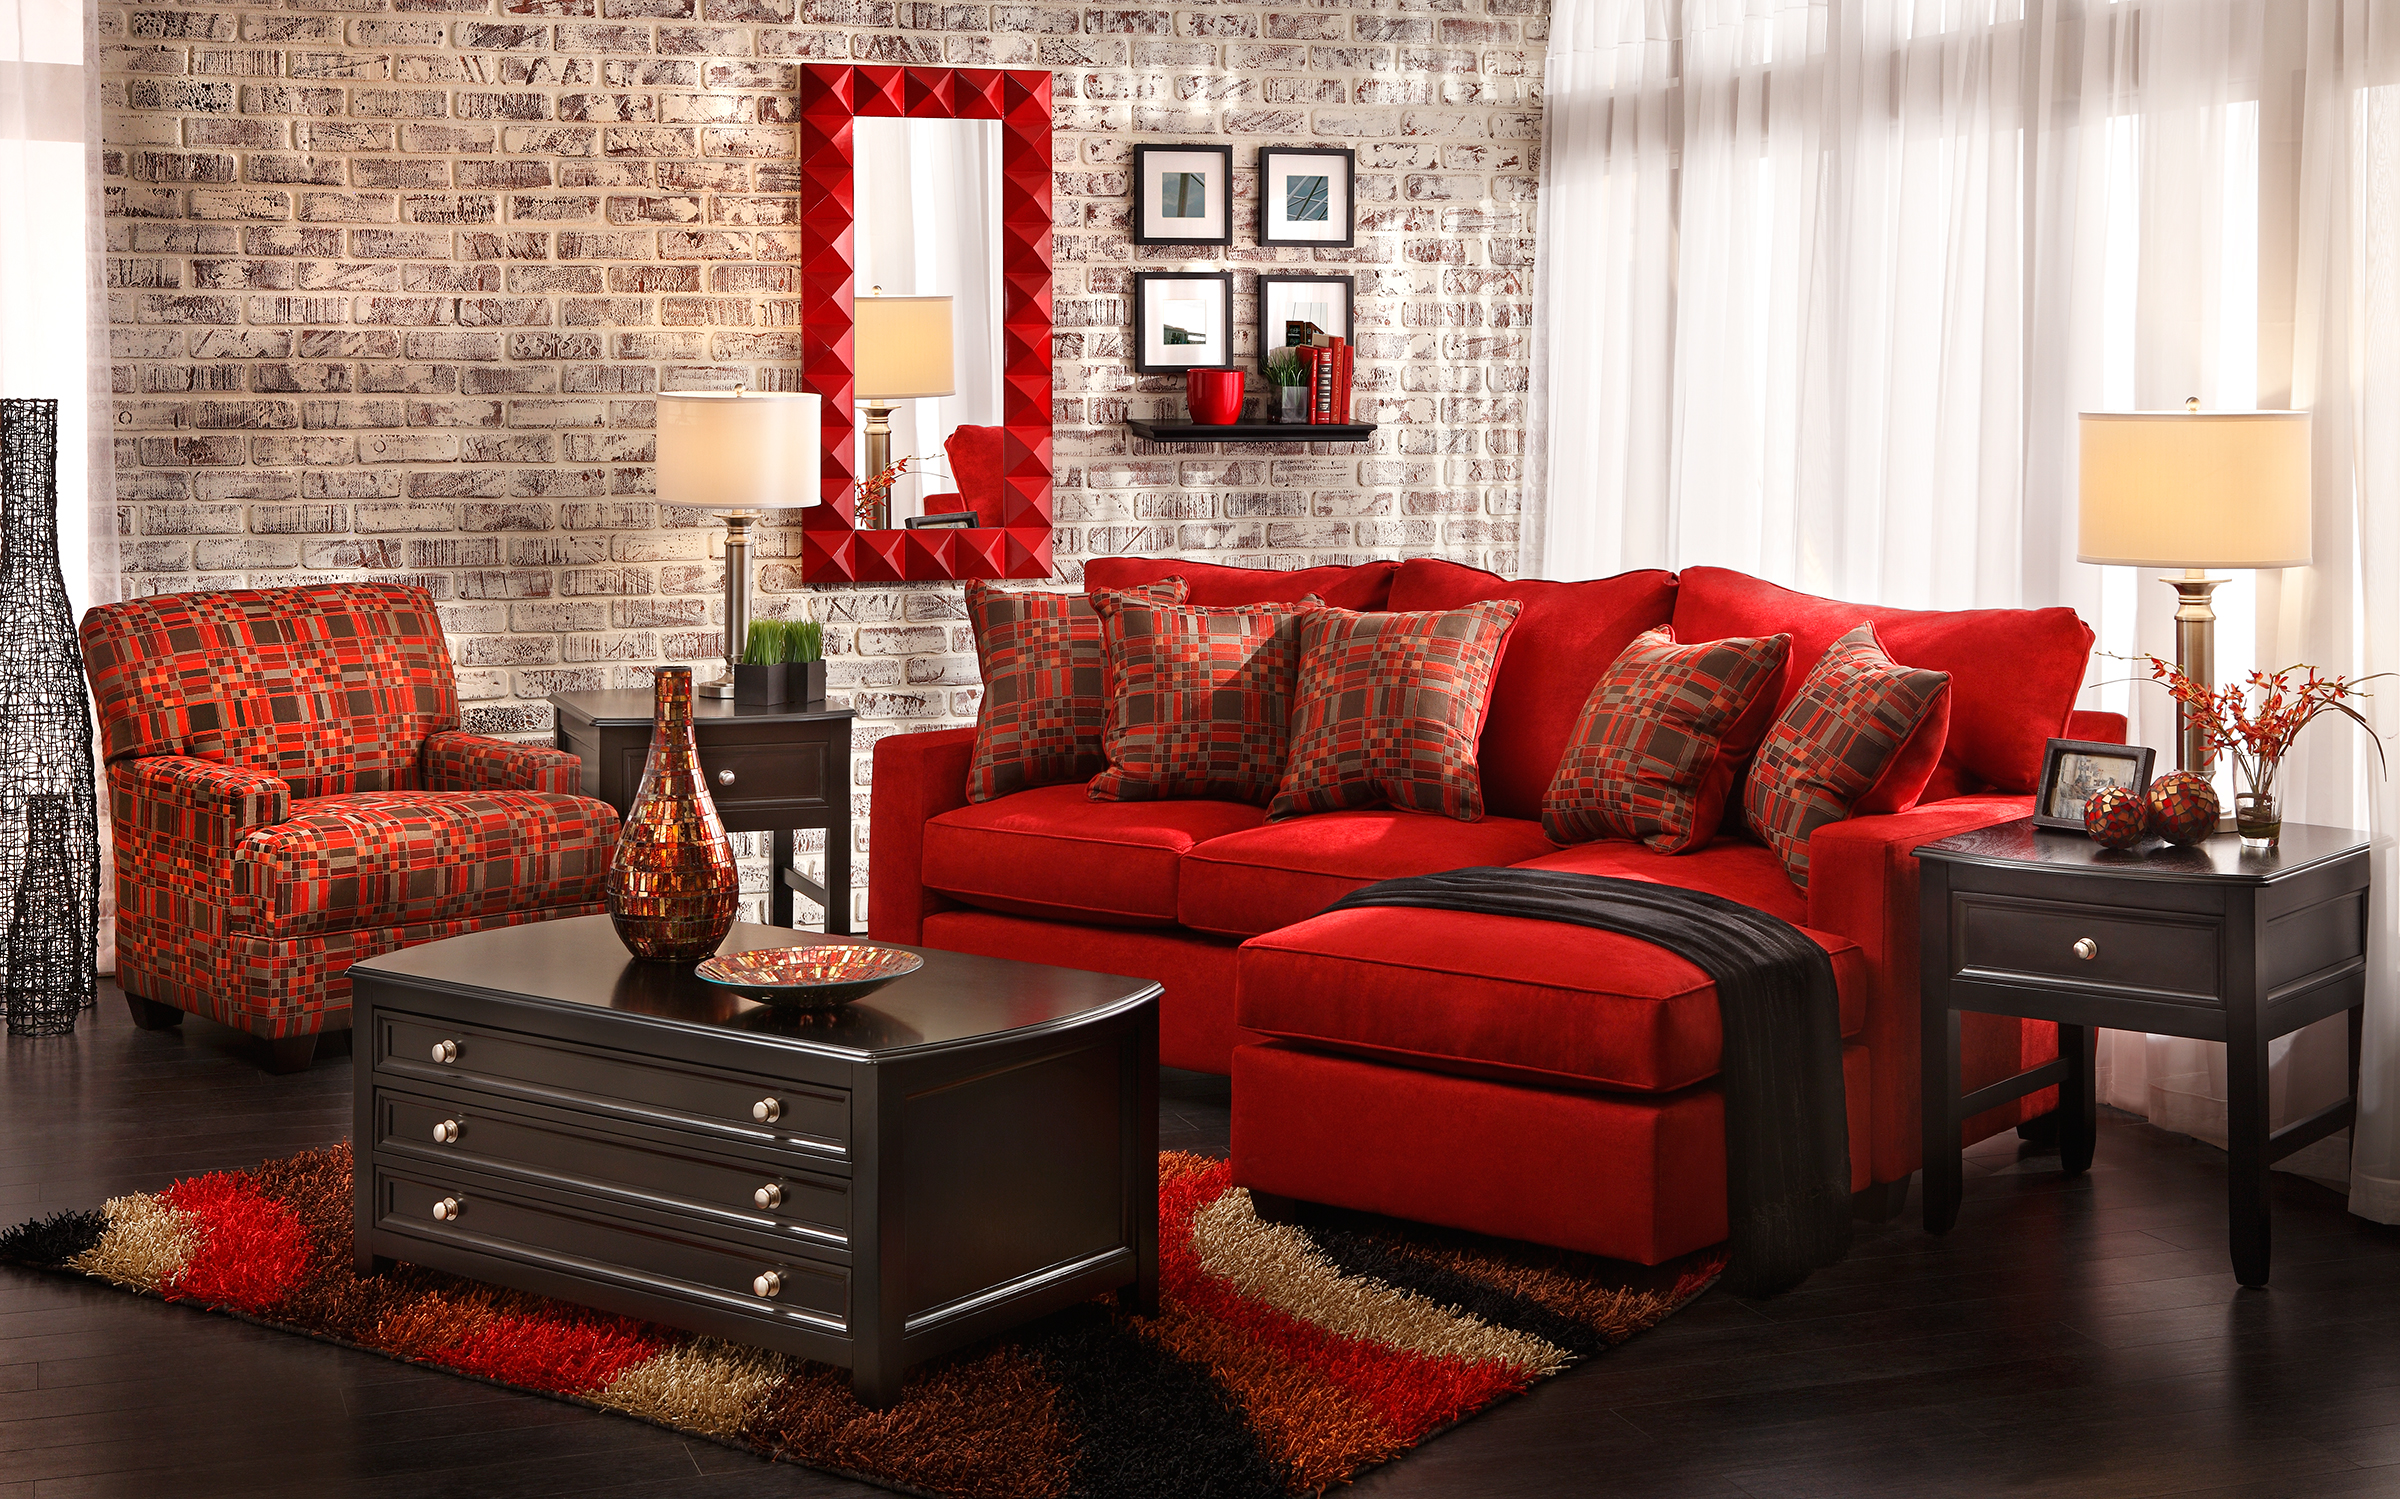 Furniture row sofas furniture row sofa mart www for Furniture row